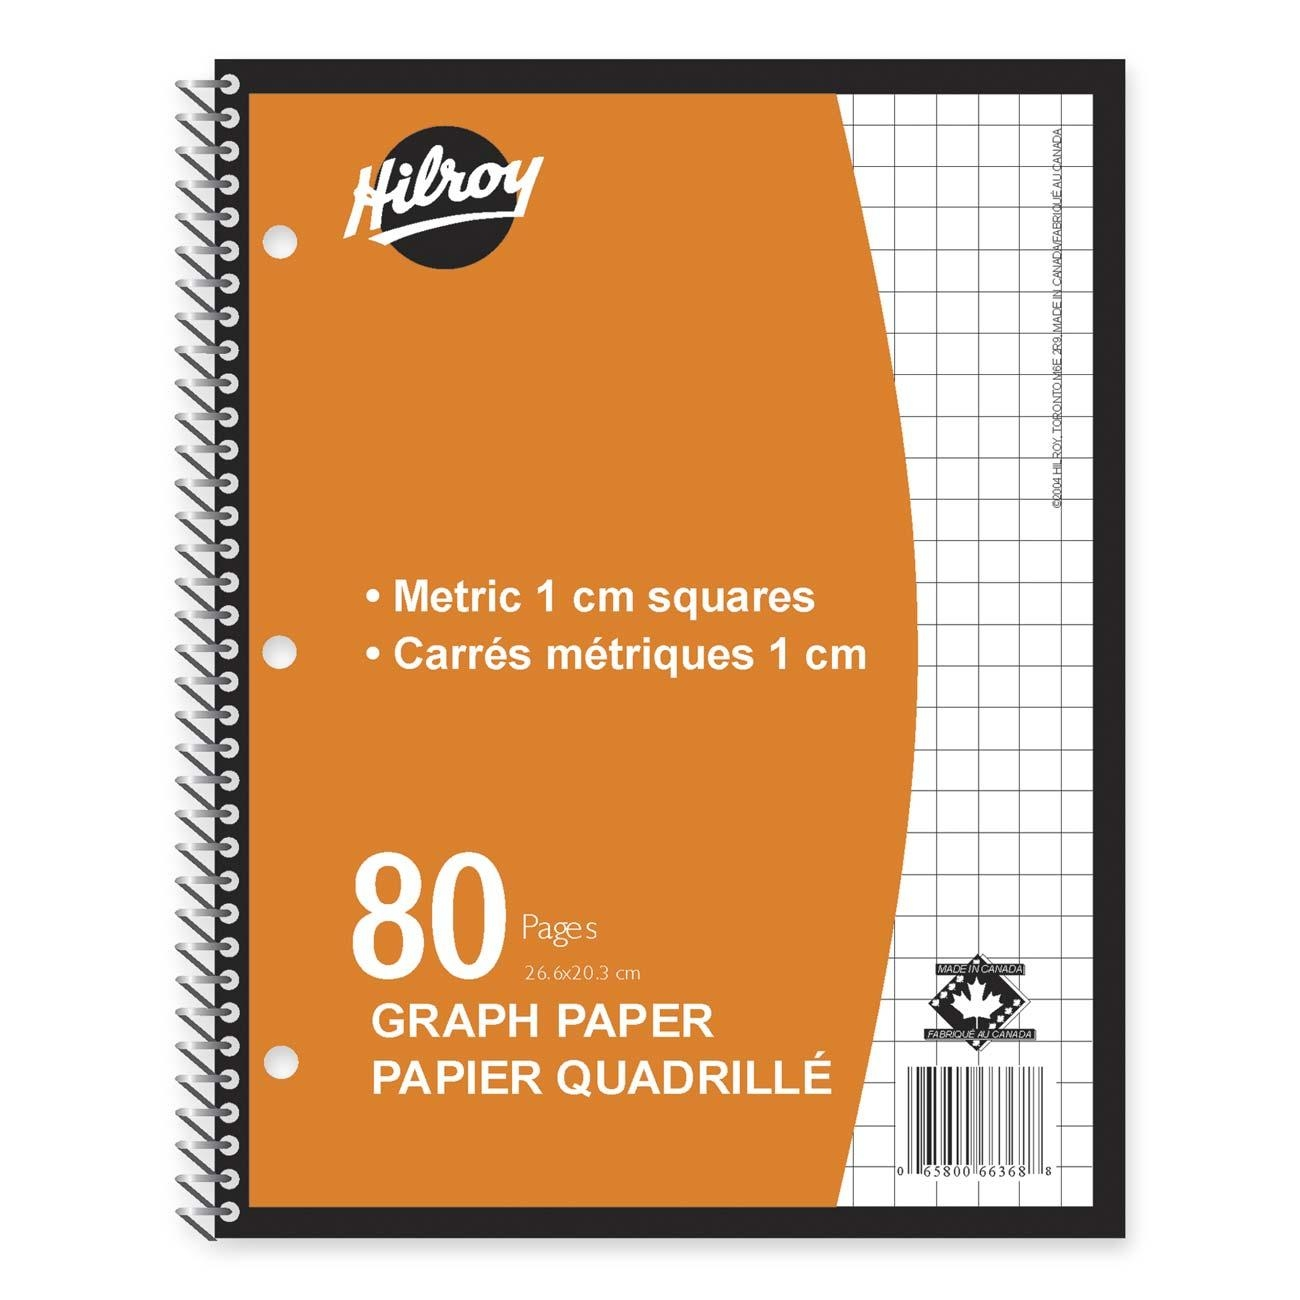 Hilroy Metric Graph Paper Coil Notebook.